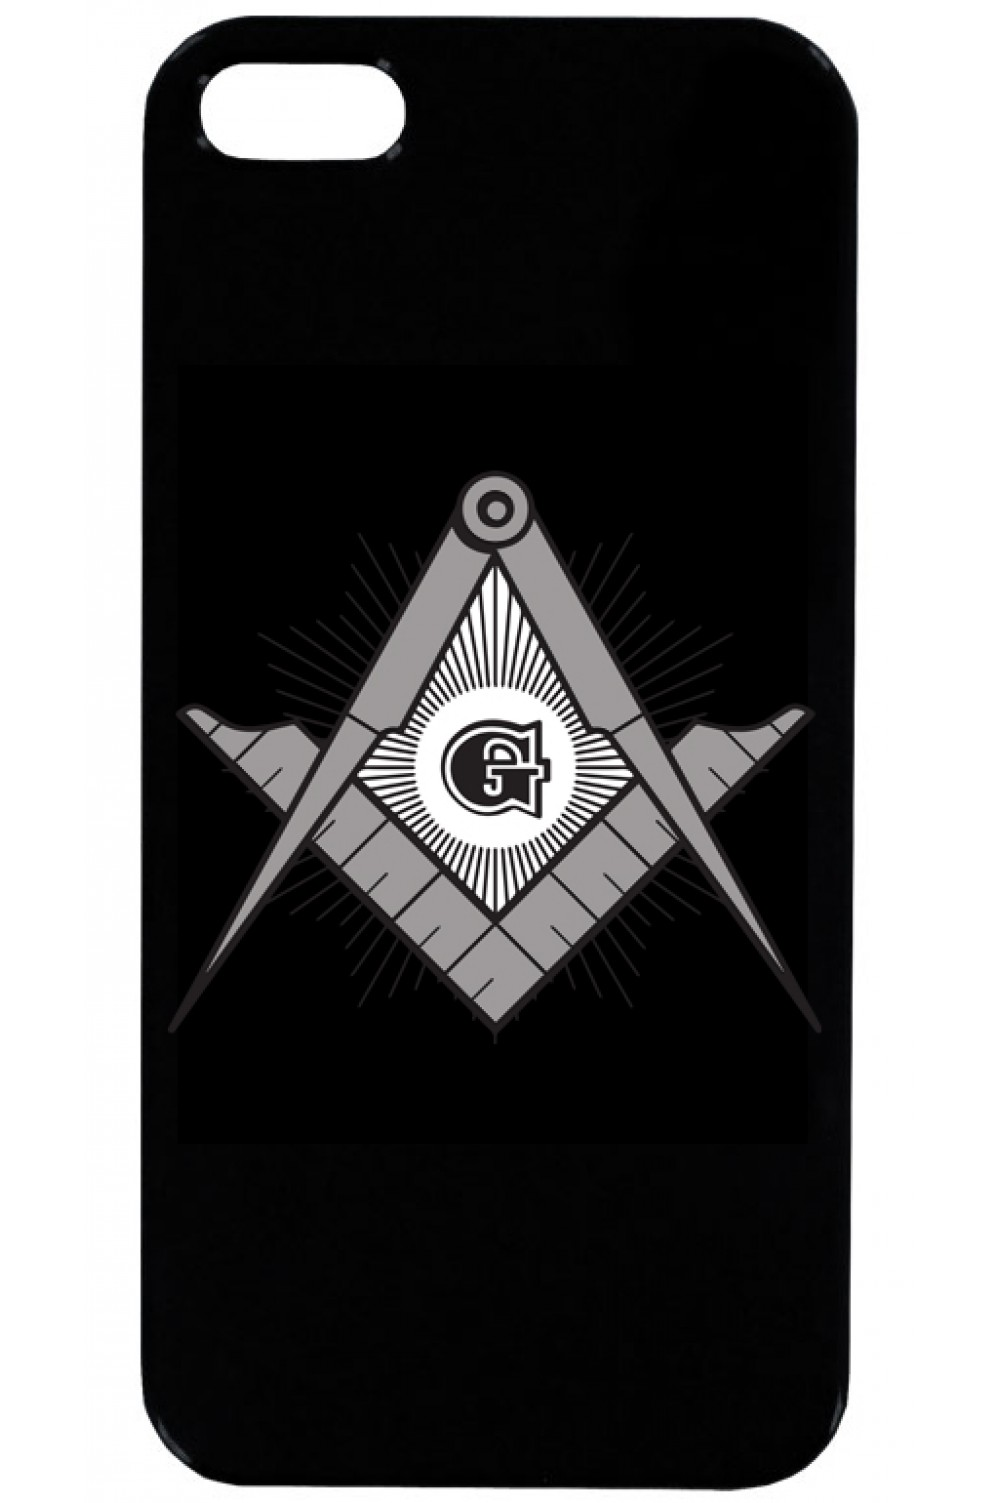 Phone Case - Masonic Symbol 7